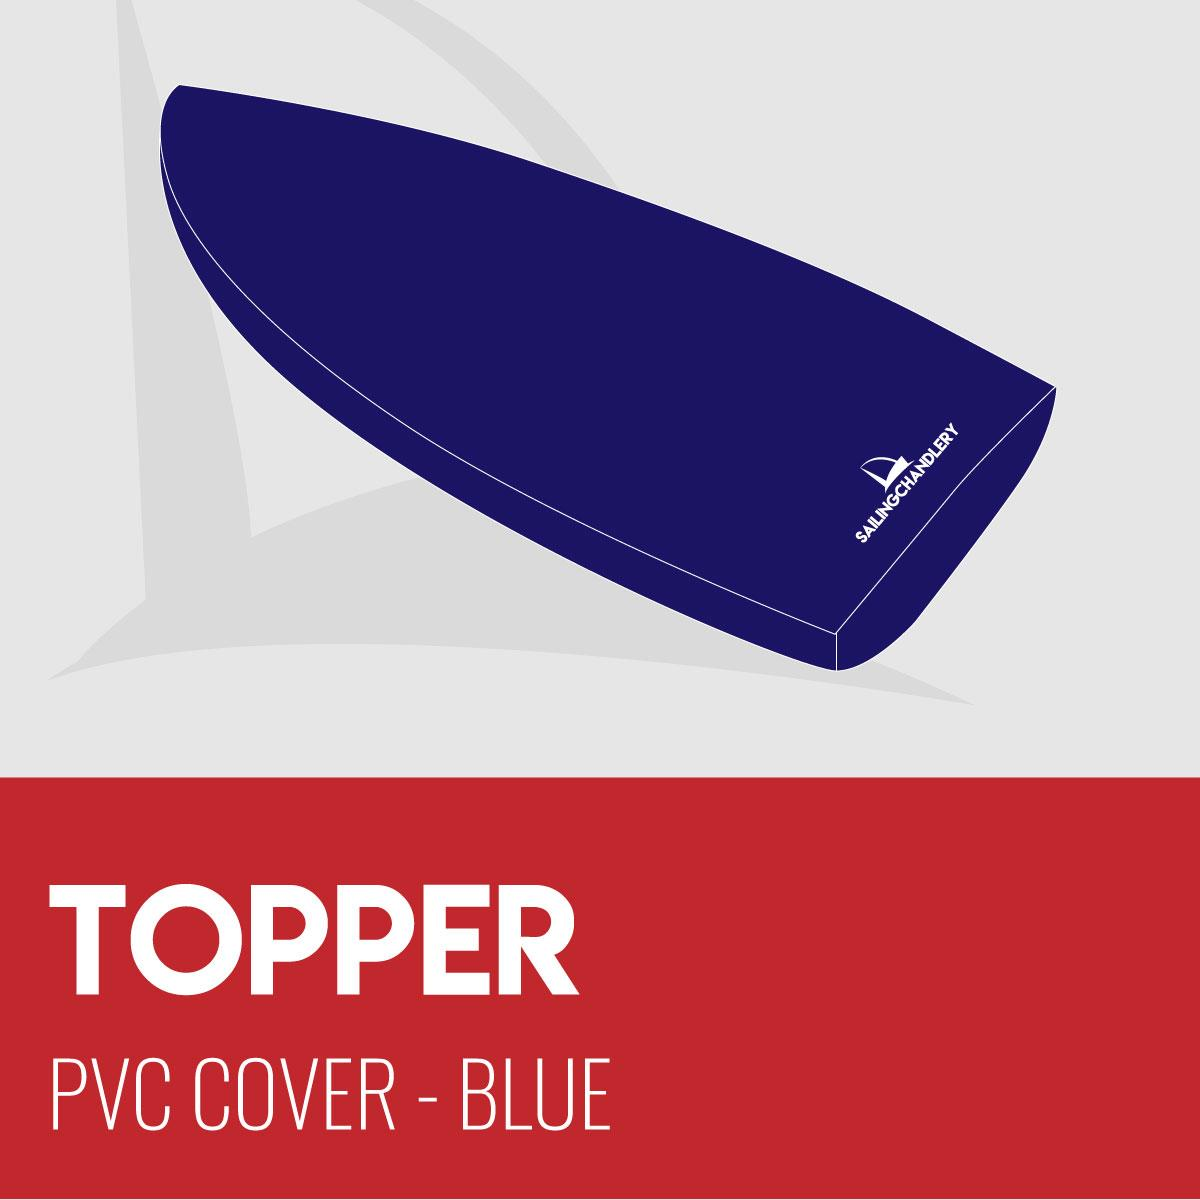 Topper Boat Cover - PVC